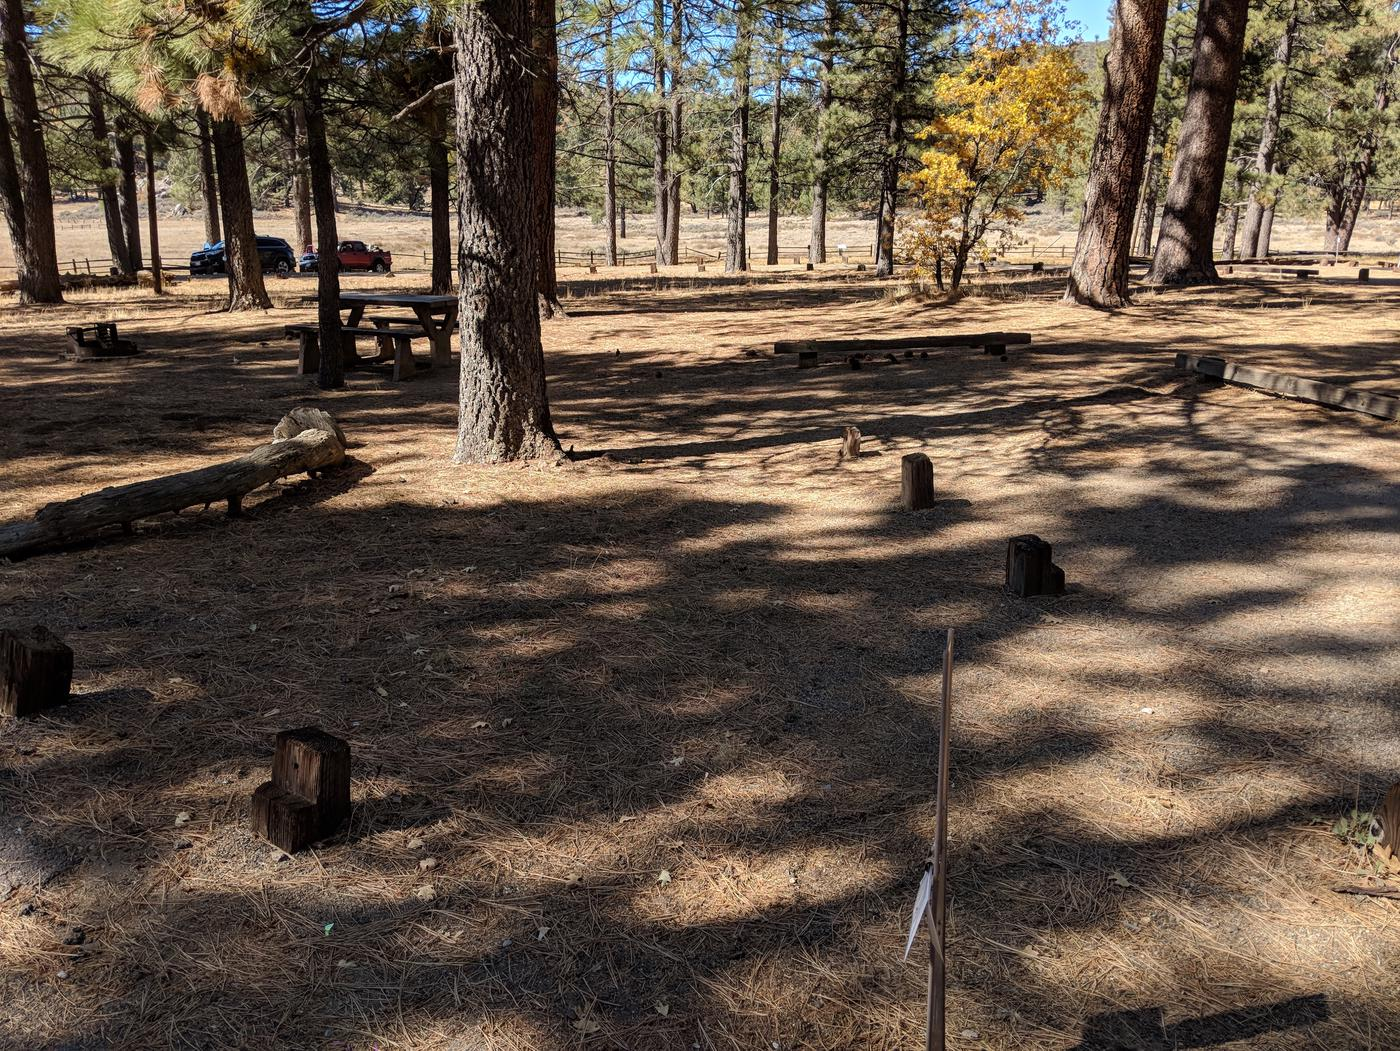 Laguna Campground site #16 wooded camping space view and picnic area.